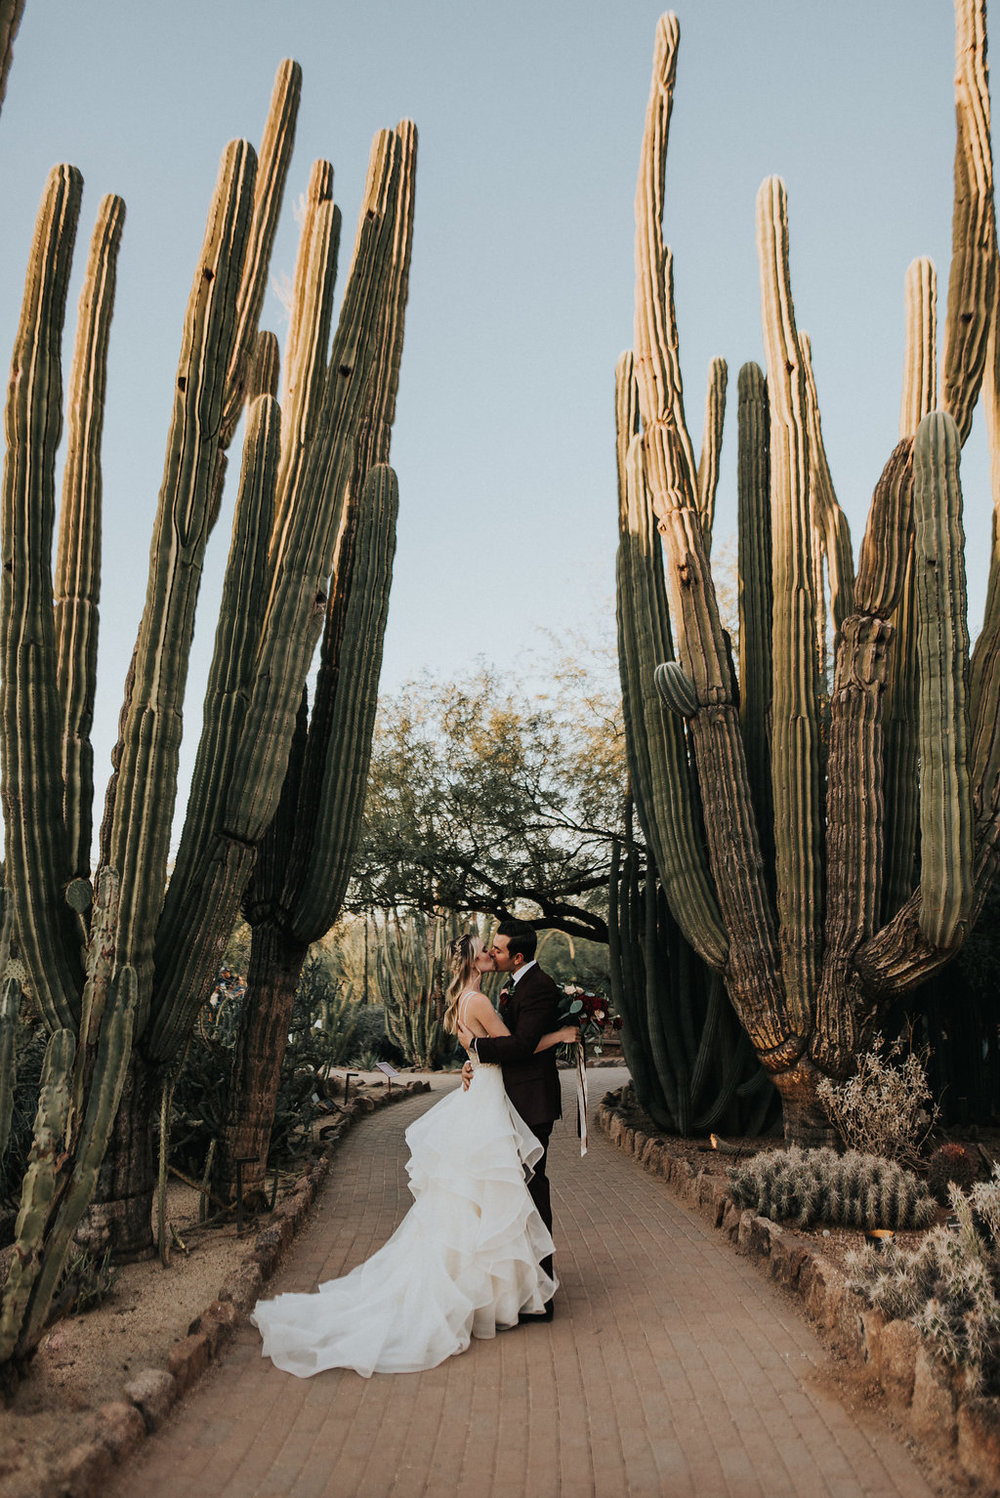 A Colorful Arizona Sunset Wedding at the Desert Botanical Gardens - Tremaine Ranch Arizona Wedding Event Vintage Furniture Tableware Specialty Rentals with Jonnie and Garrett31.jpg